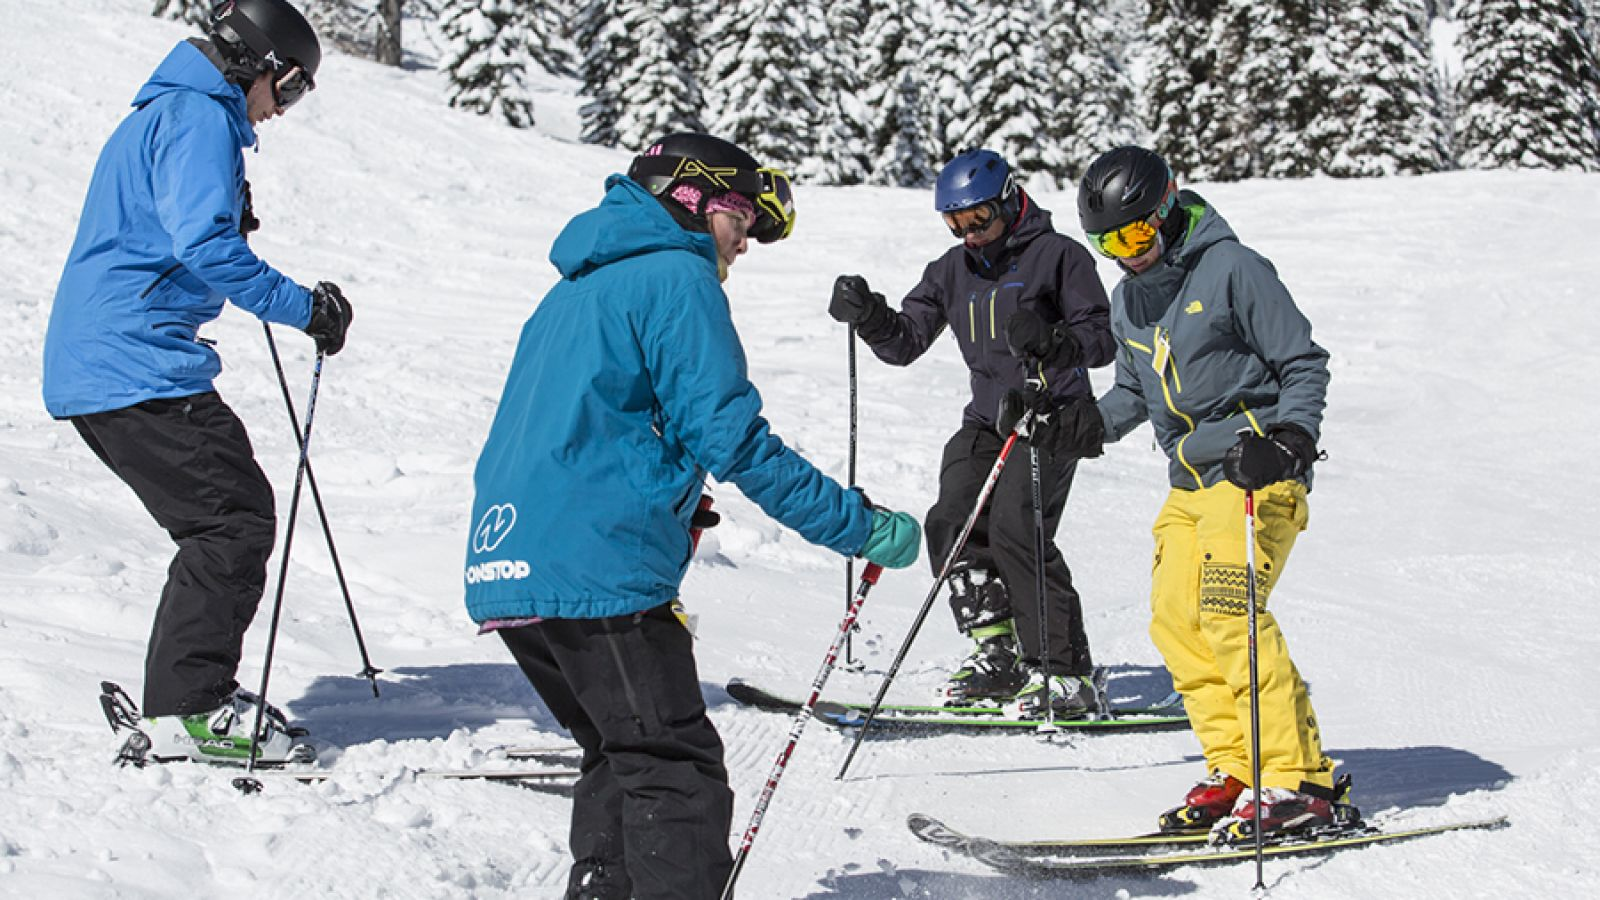 Ski coaching in a friendly course environment.